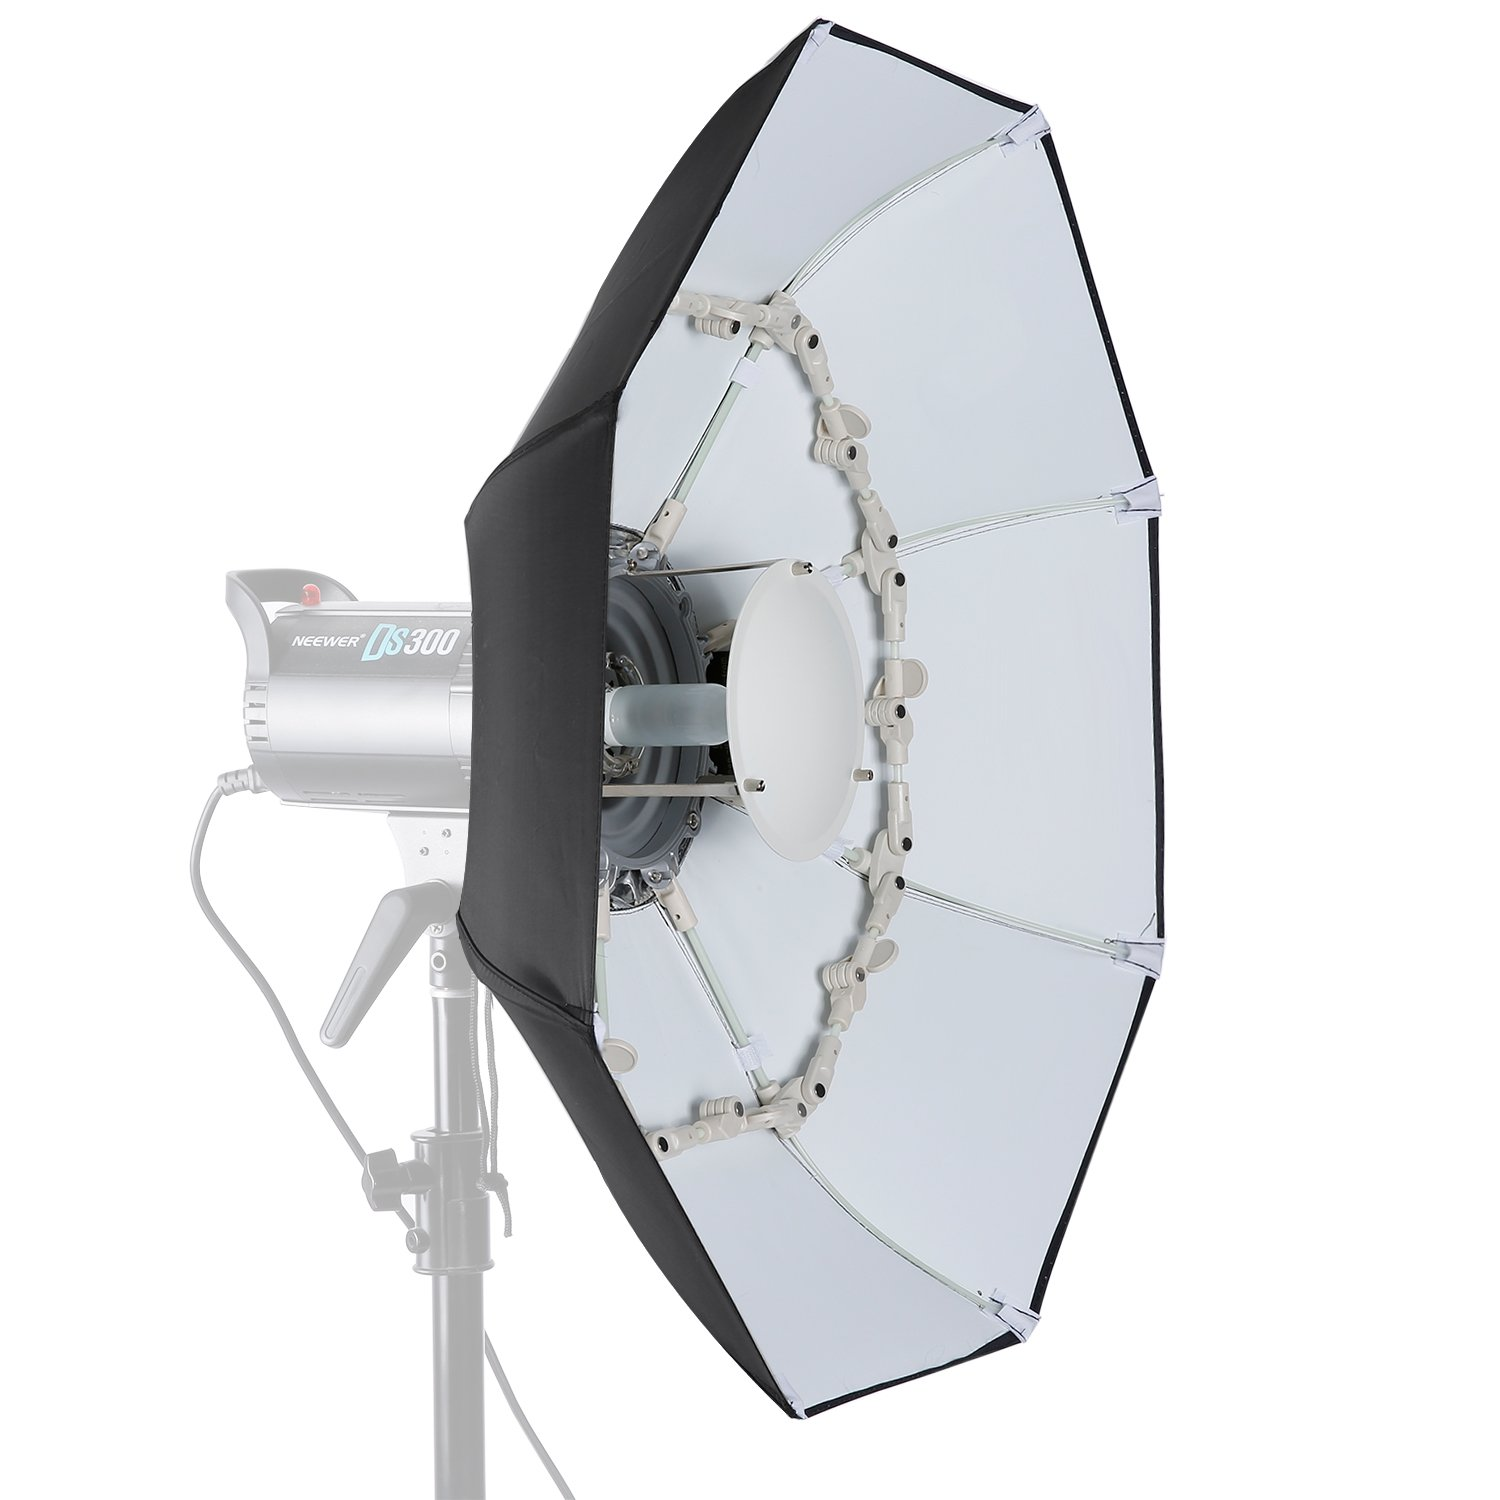 Neewer 27.5 inches/70 centimeters Folding Beauty Dish Octagonal with Center Deflector Disc, Removable Front Diffuser and Bowens Speed Ring for Monolight Studio Flash in Portrait and Event Photography by Neewer